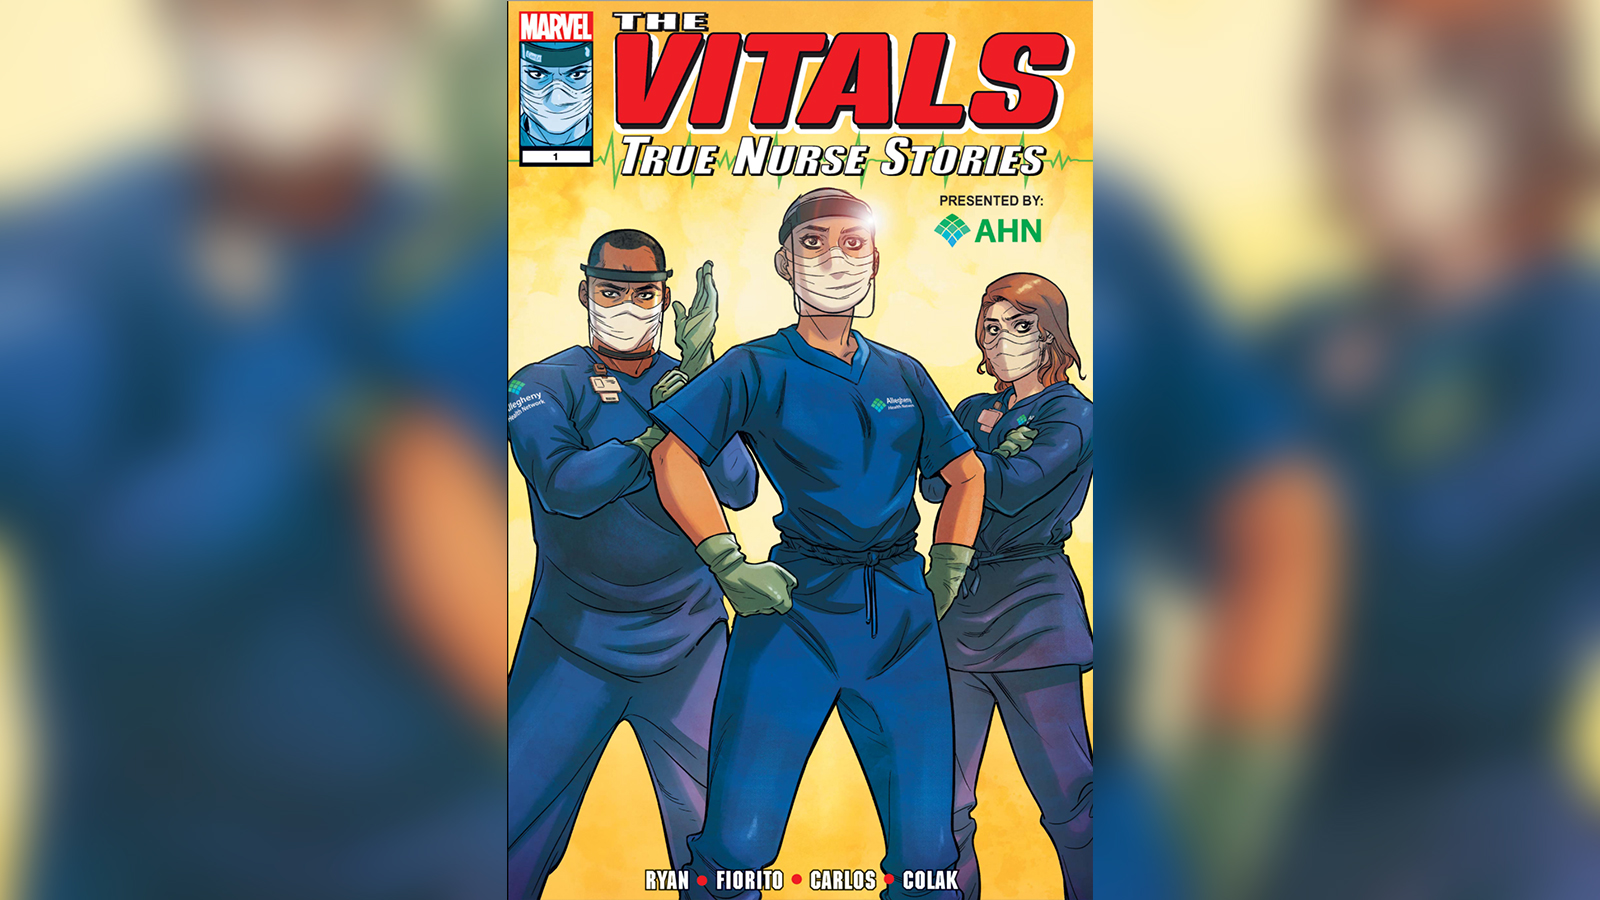 New comic book celebrates nurses as health care superheroes